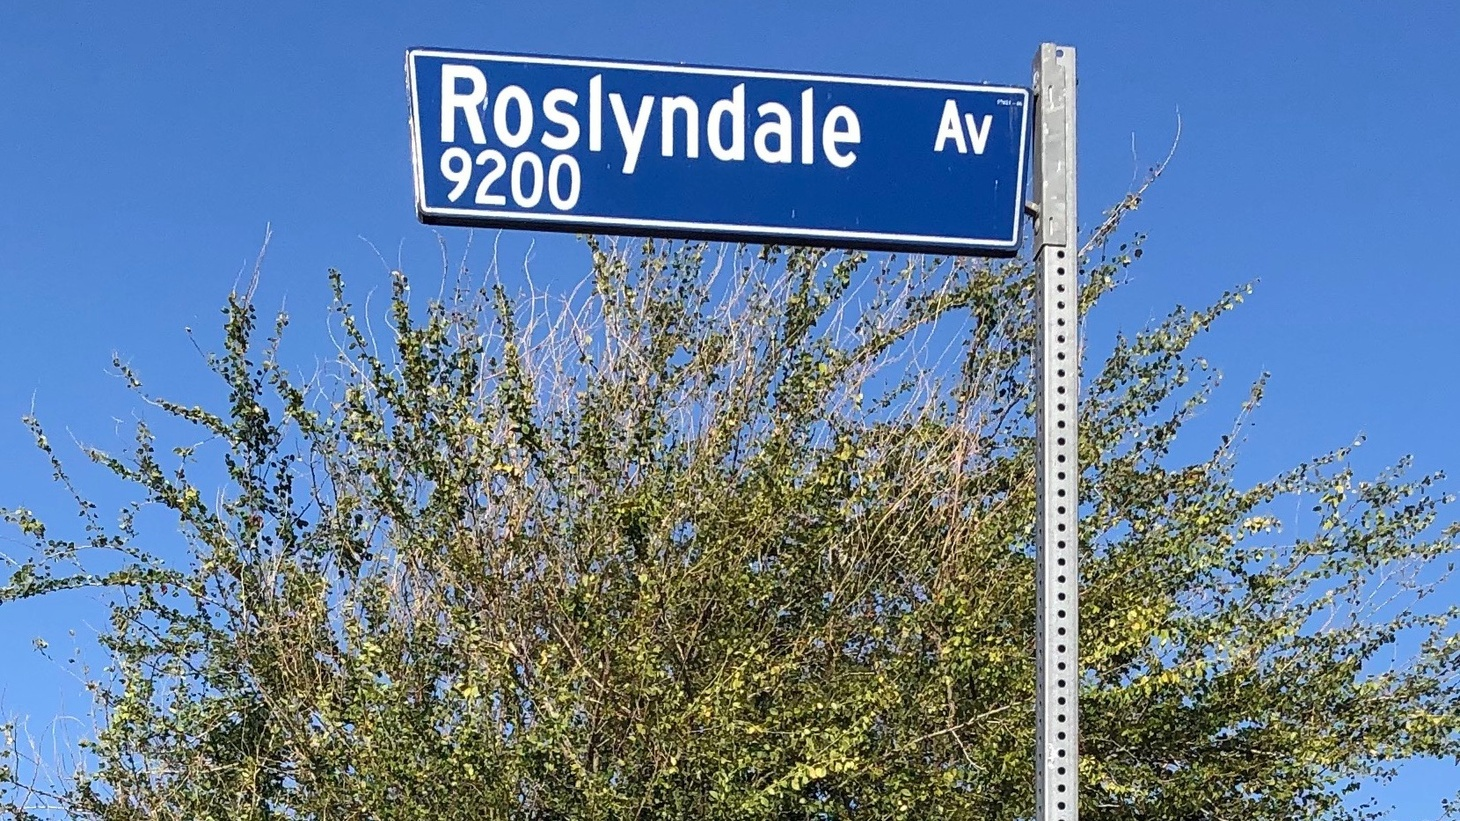 """The Roslyndale Avenue sign today. """"People want to live on the street that is a desirable name, and marketers know that,"""" explains author Deirdre Mask."""